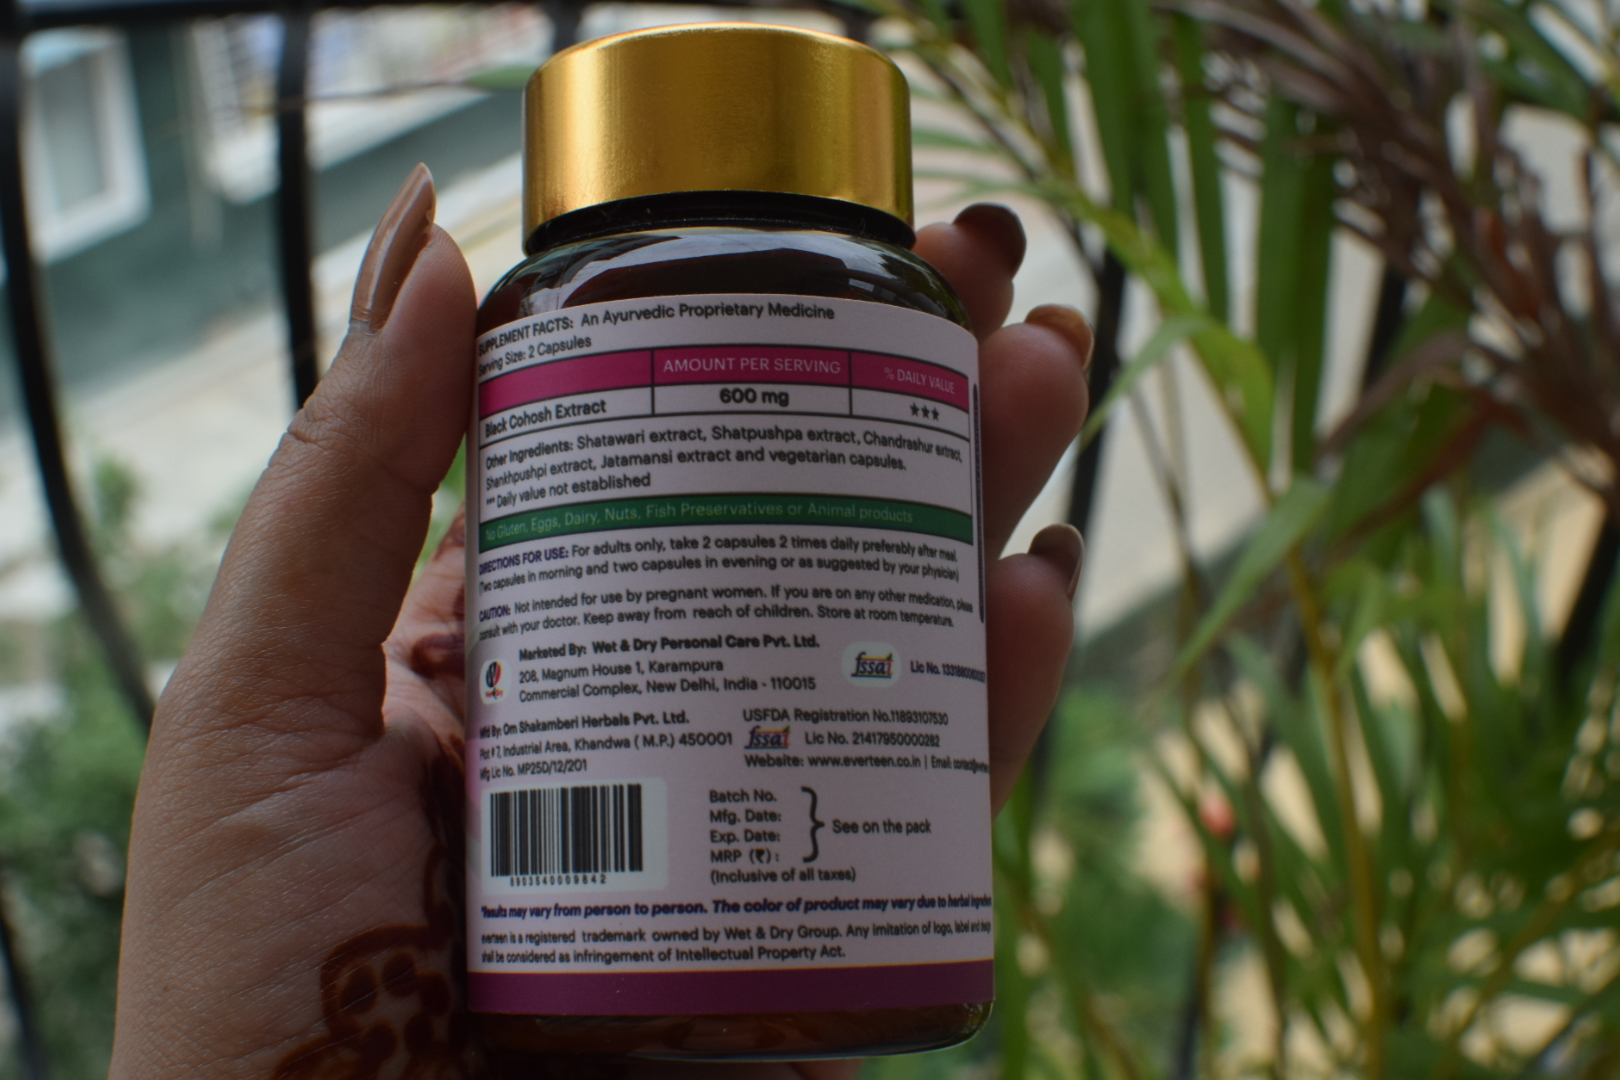 Everteen Menopausal Relief Natural Capsules With Black Cohosh Review